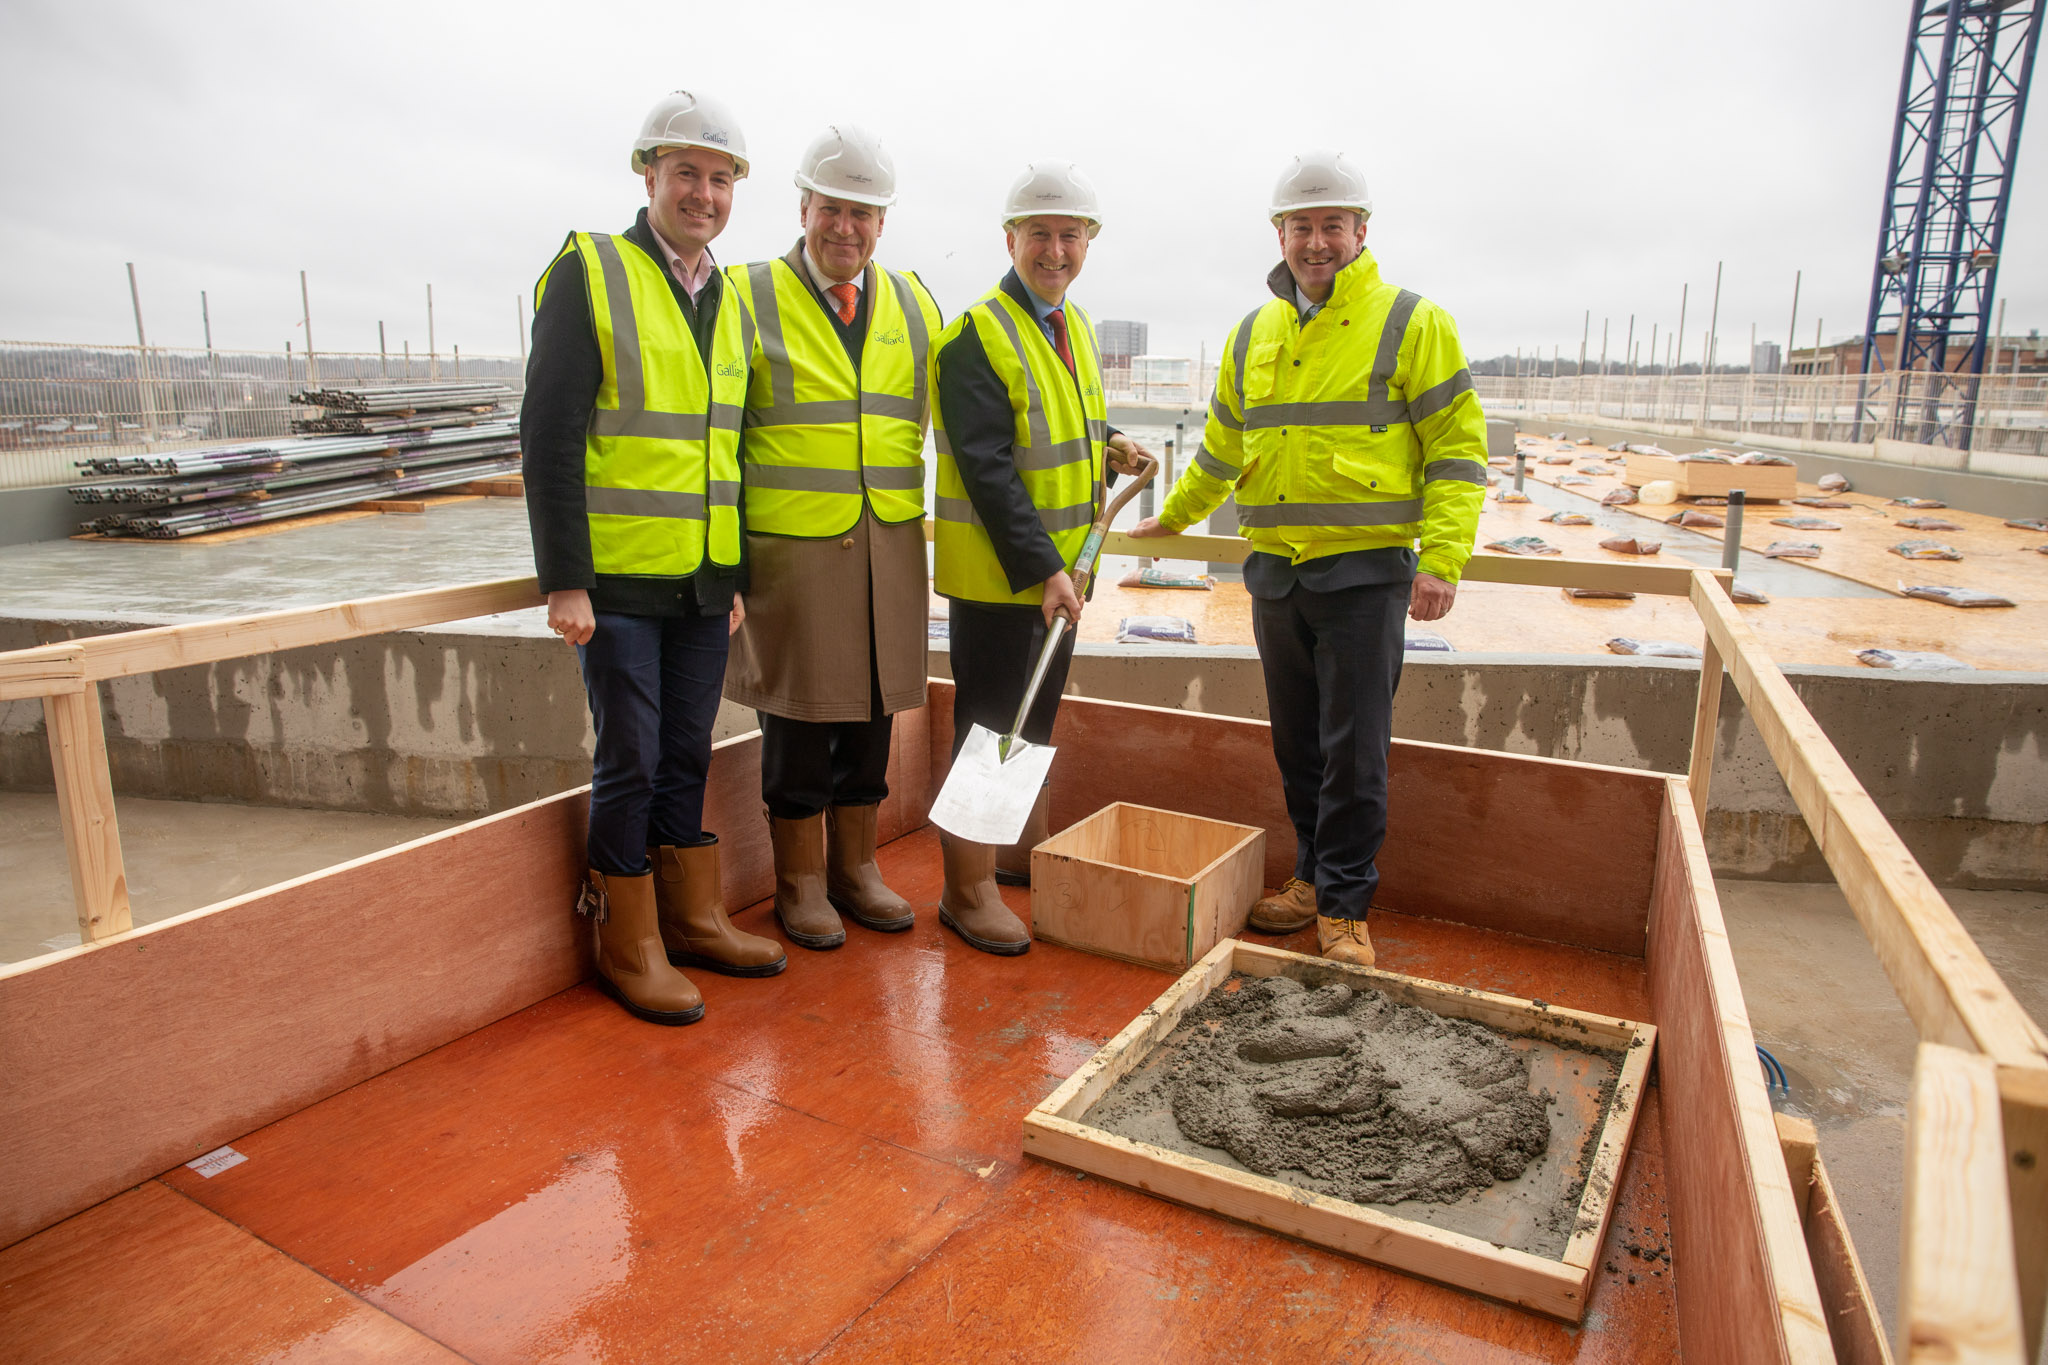 Cllr Gareth Moore, Conservative member for Erdington, Gerard Nock, chairman of Apsley House Capital, Cllr Ian Ward, Leader of Birmingham City Council, and Don O'Sullivan, chief executive of Galliard Homes at topping out ceremony for Timber Yard development in Birmingham